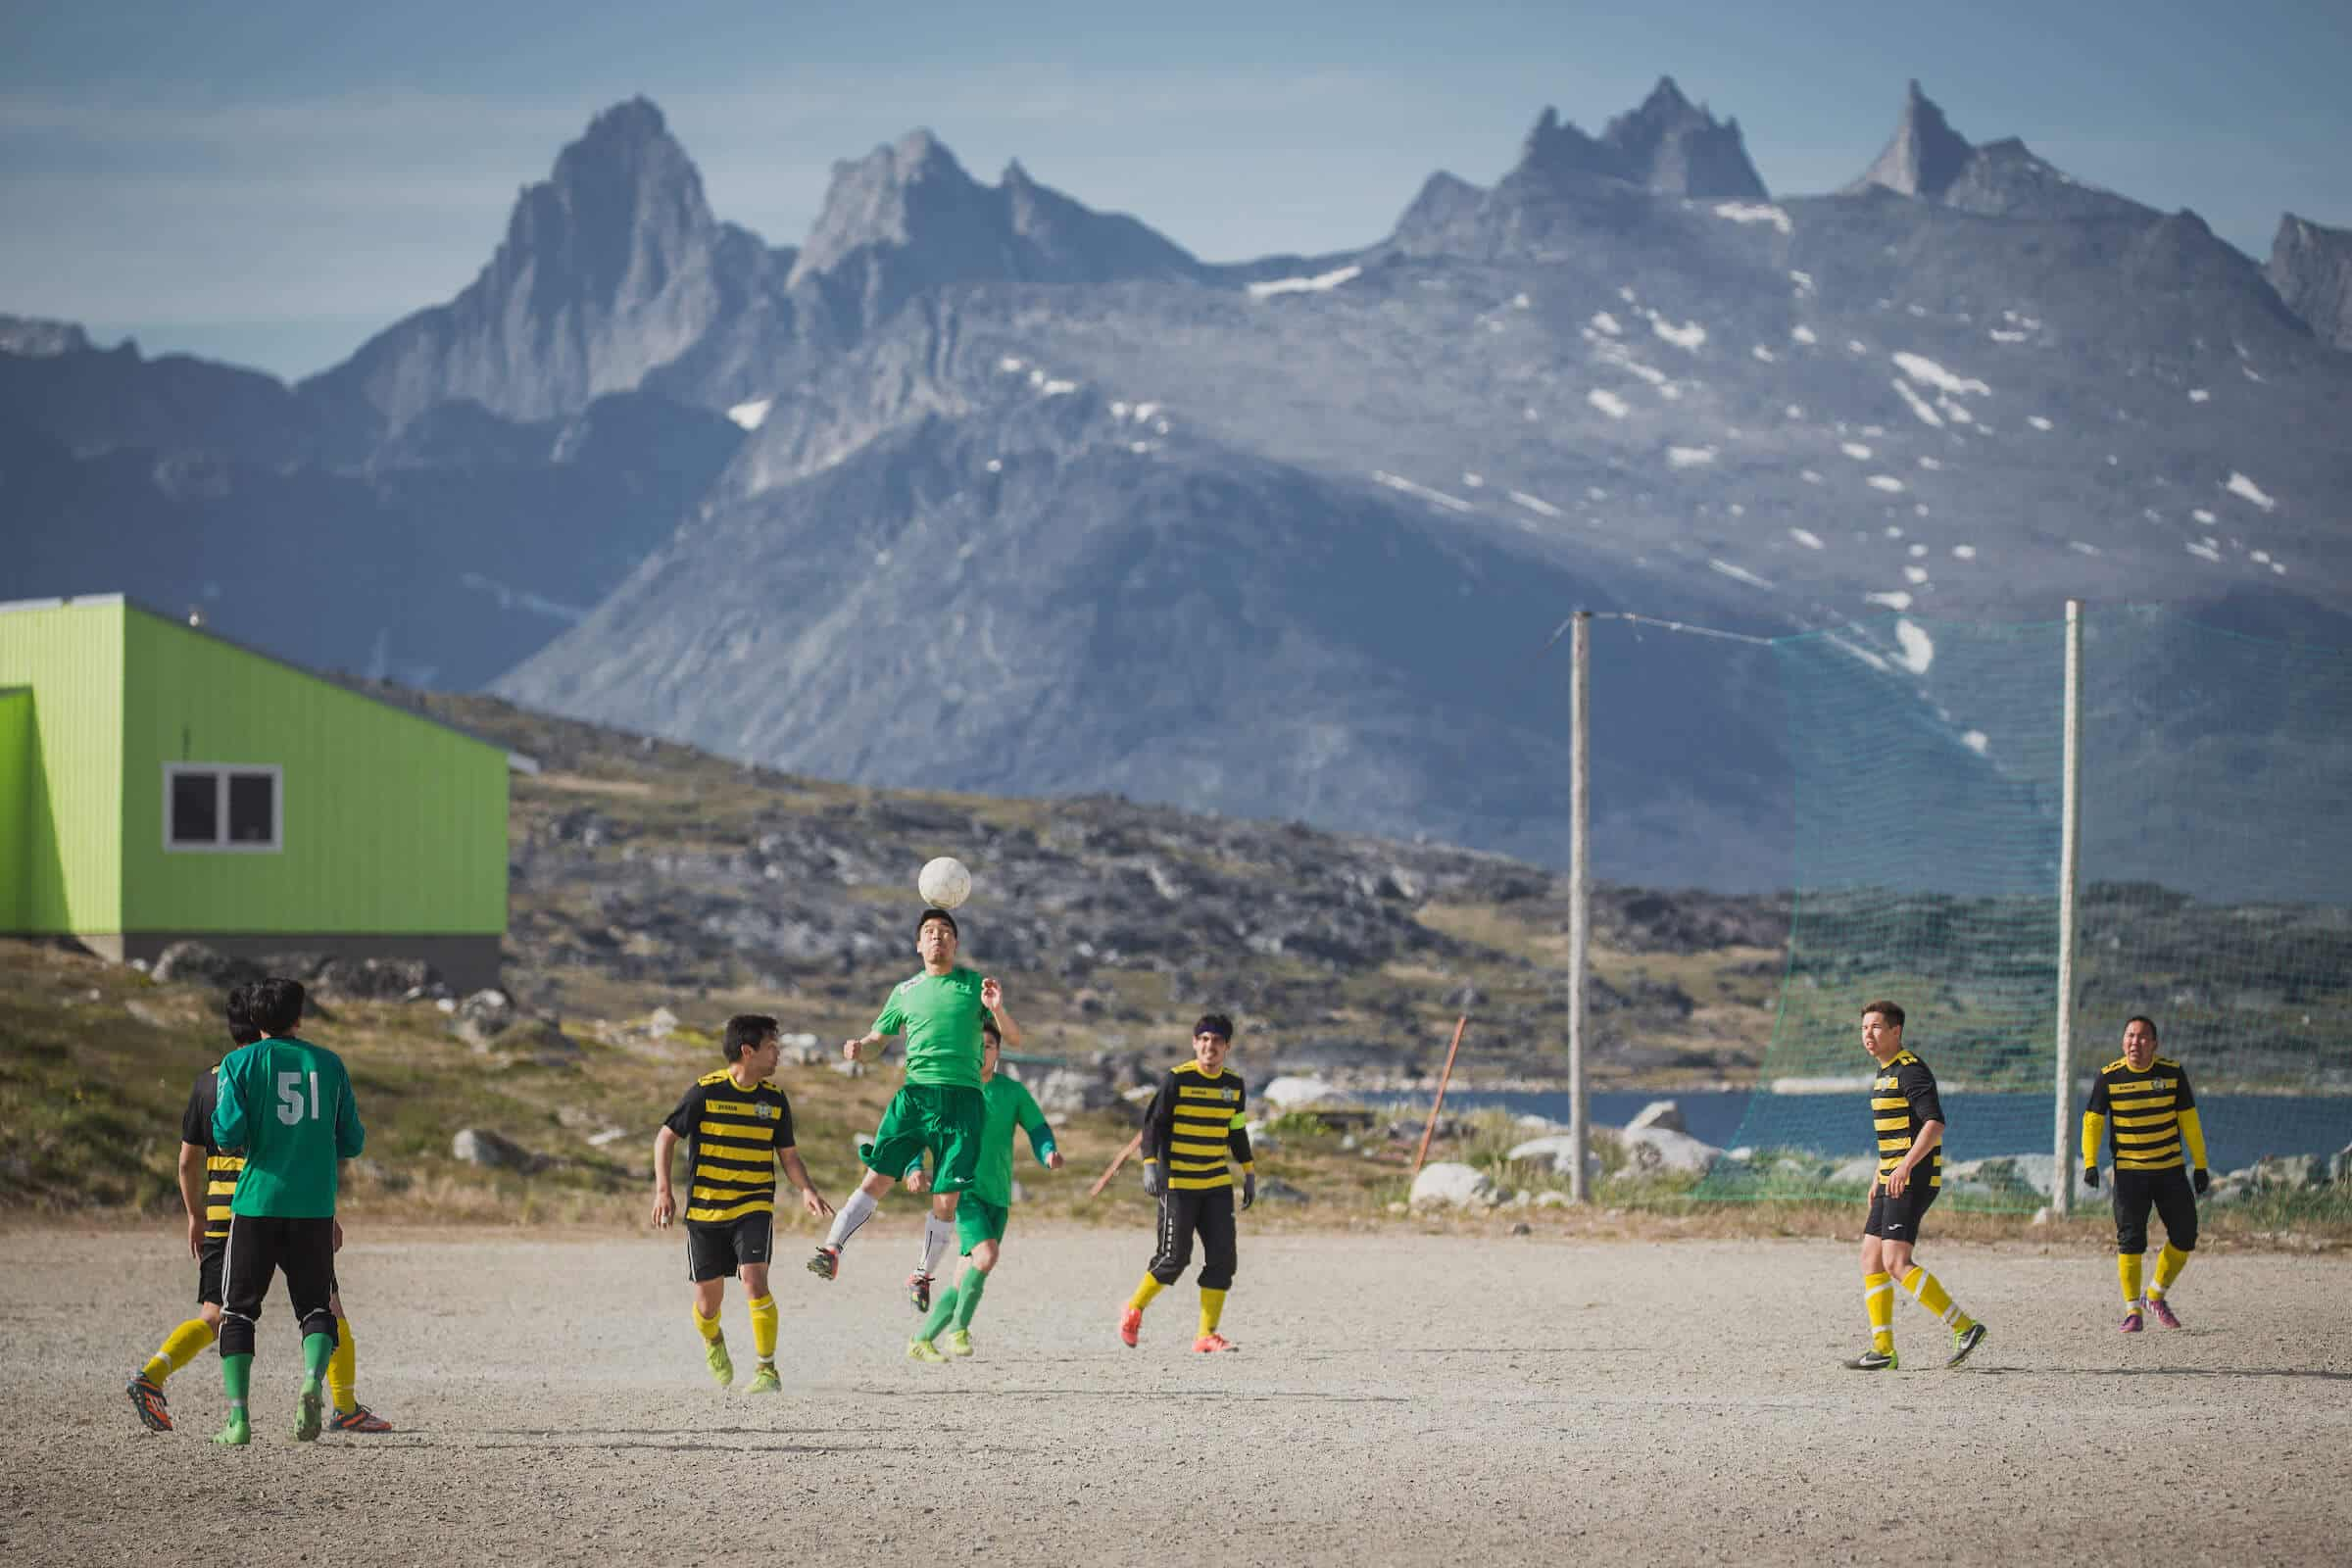 A game of soccer in Nanortalik in South Greenland with a backdrop of rugged peaks. Photo by Mads Pihl.